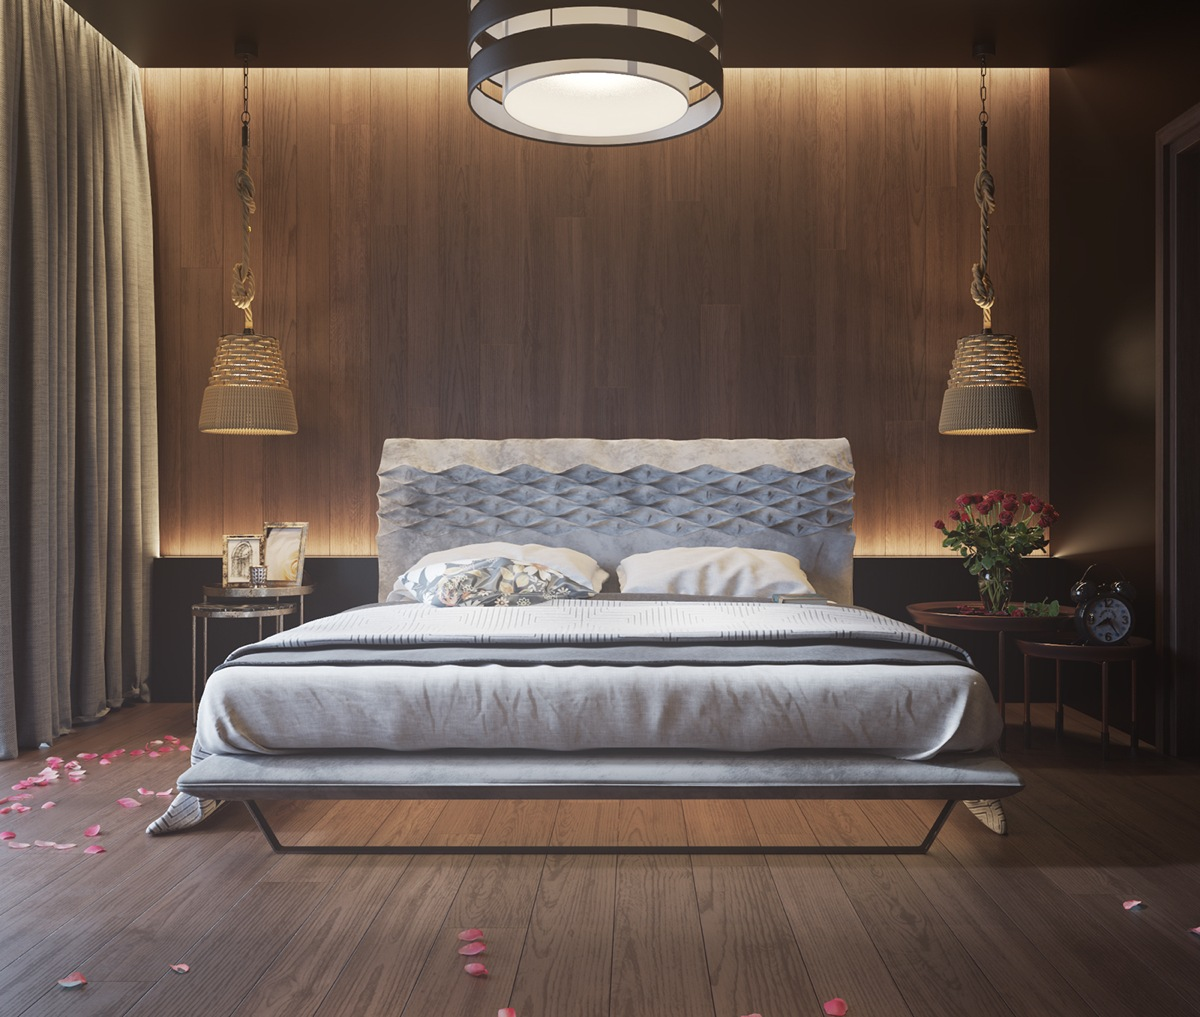 11 ways to make a statement with wood walls in the bedroom for Modele de chambre deco